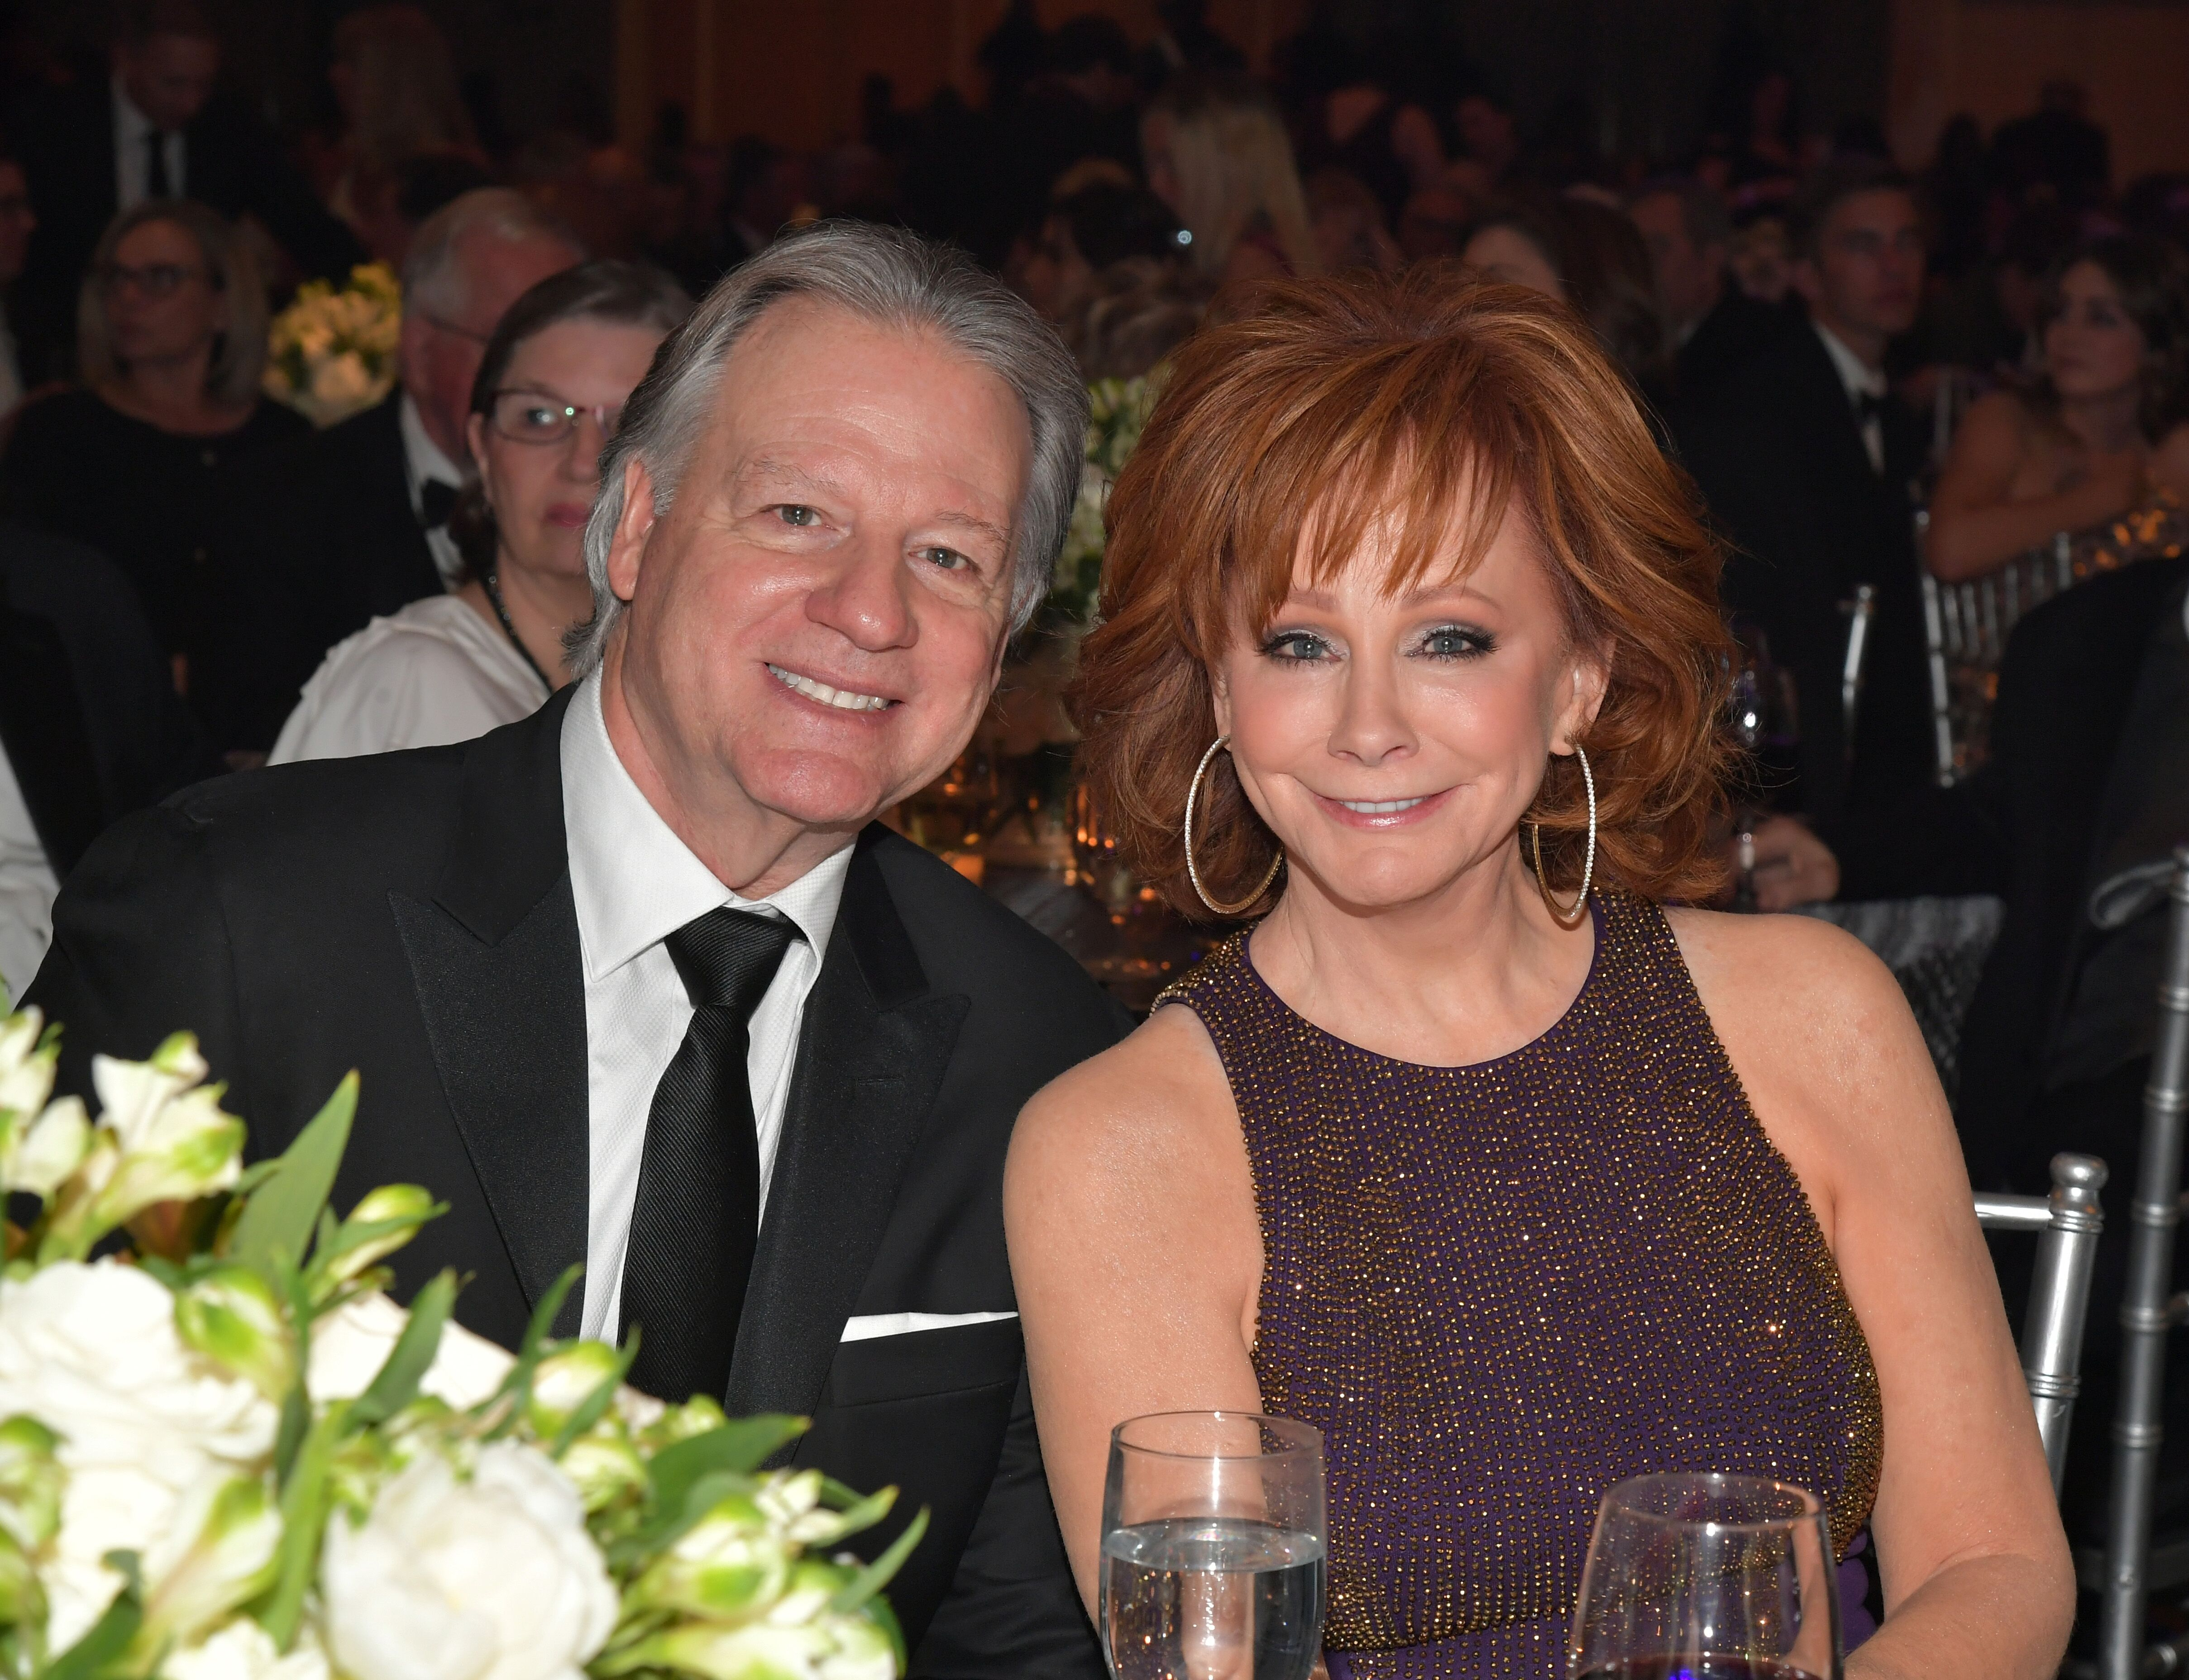 Skeeter Lasuzzo and host Reba McEntire attend Celebrity Fight Night XXV. | Source: Getty Images